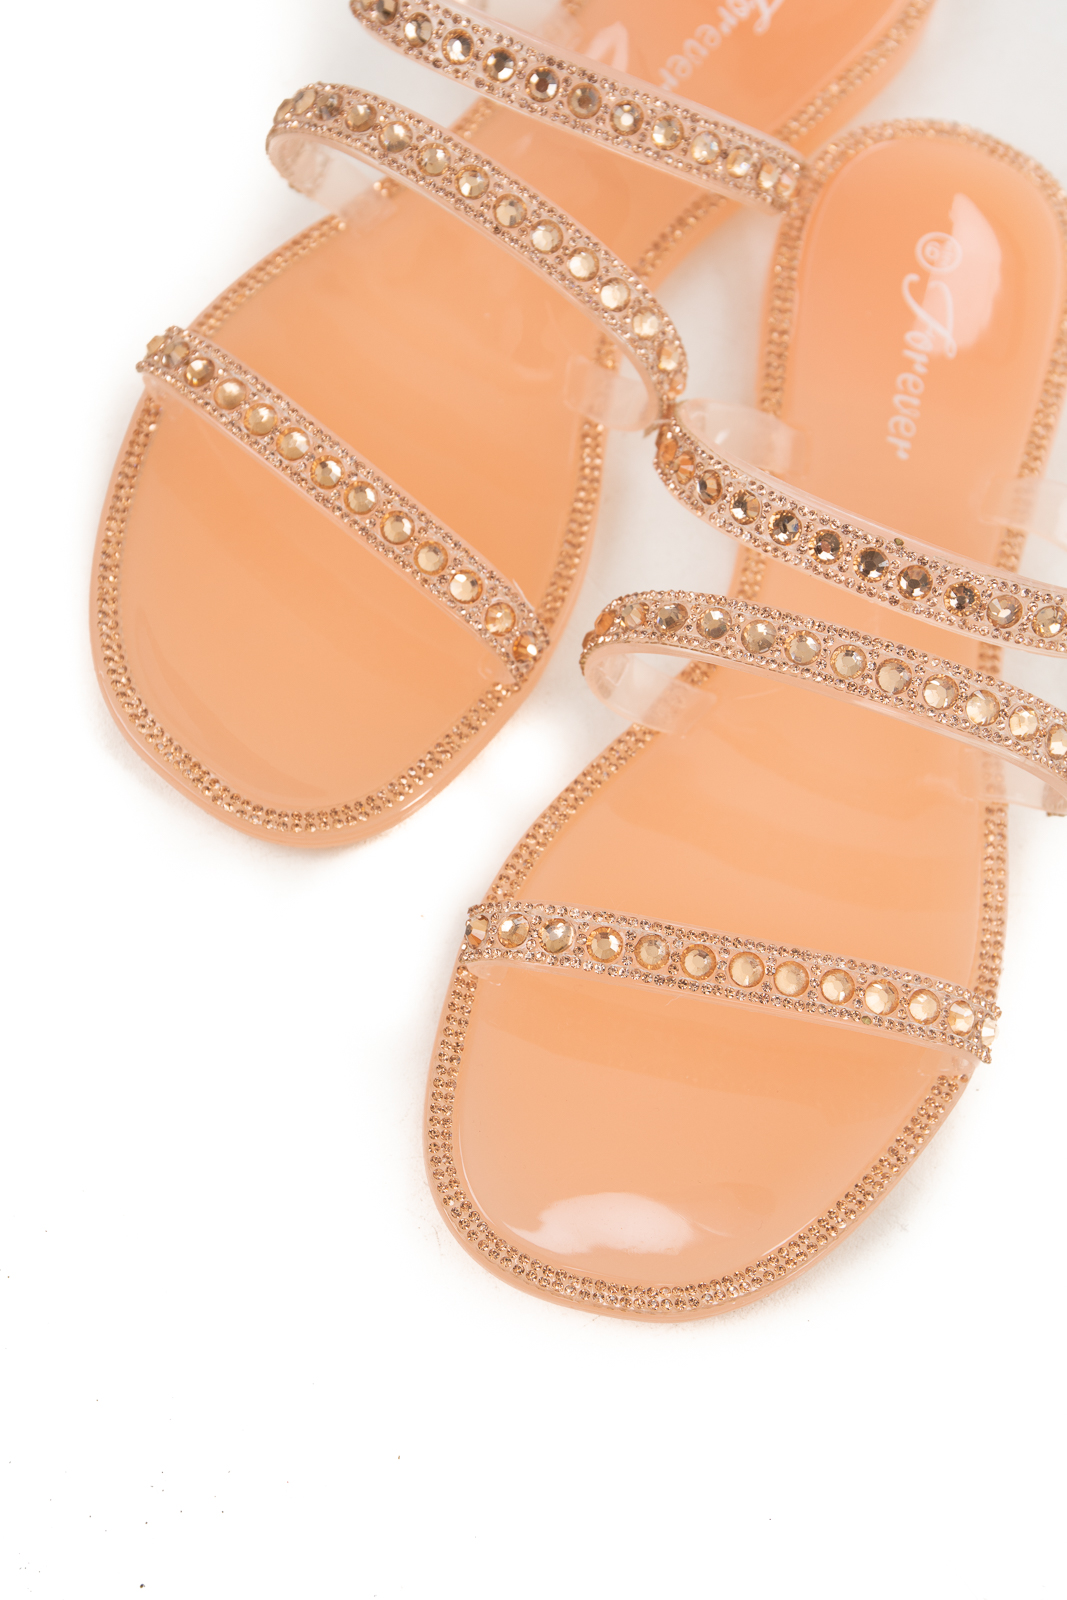 Beige Open Toe Jelly Sandals with Rhinestone Details